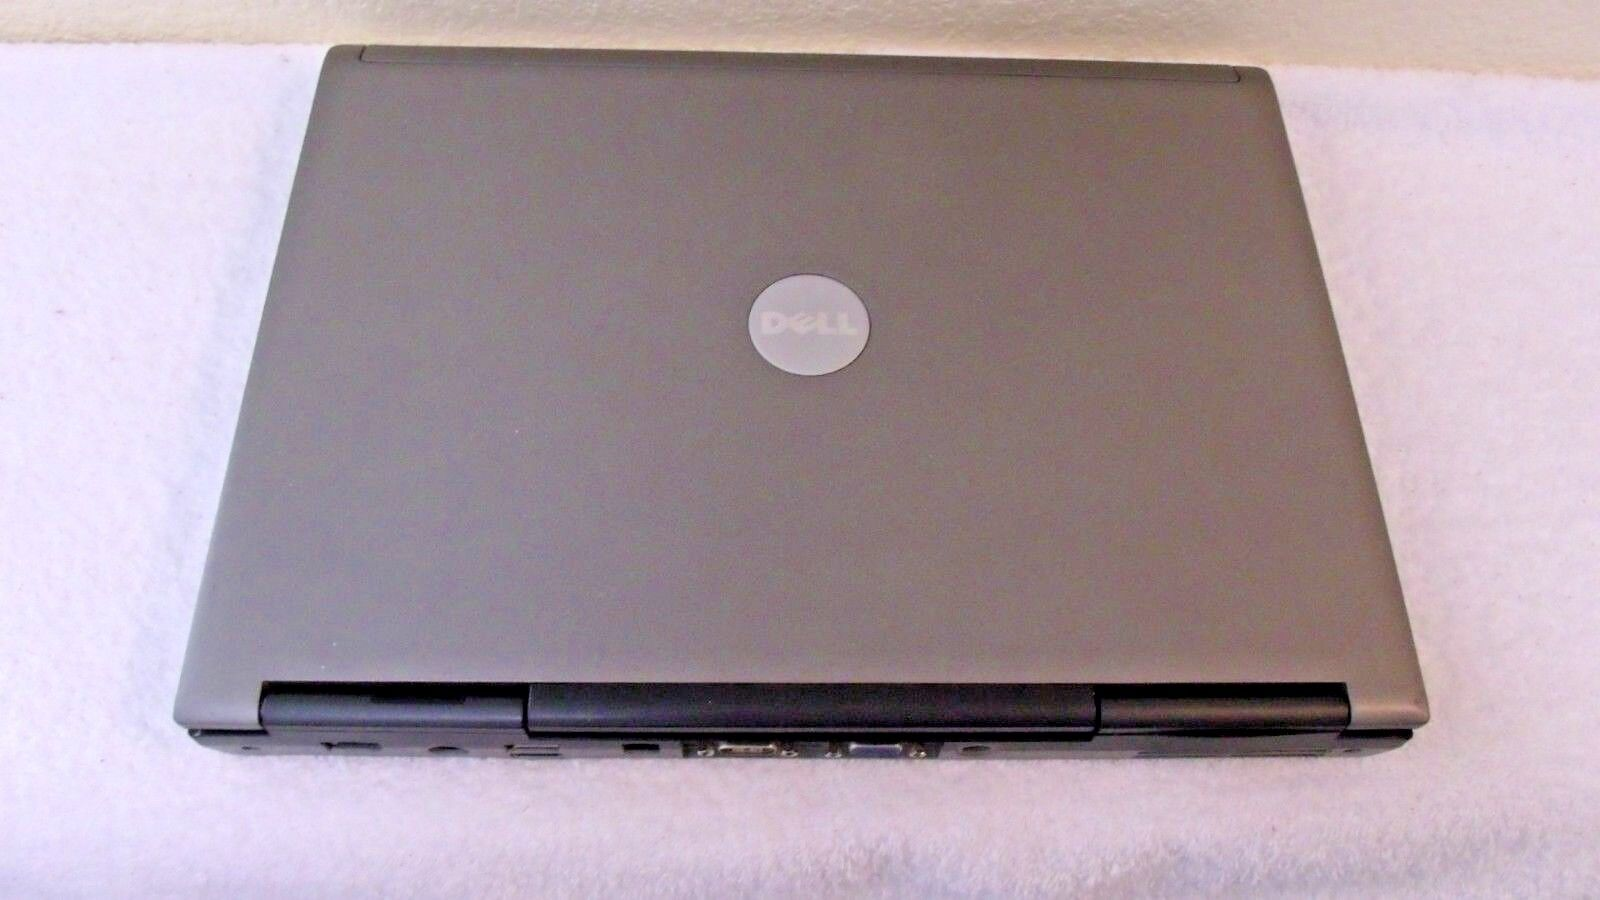 Dell Latitude D531 1gbRAM DUO AMD-R@1.99GHz 80GB HD, Battery,AC,Win 7 Home